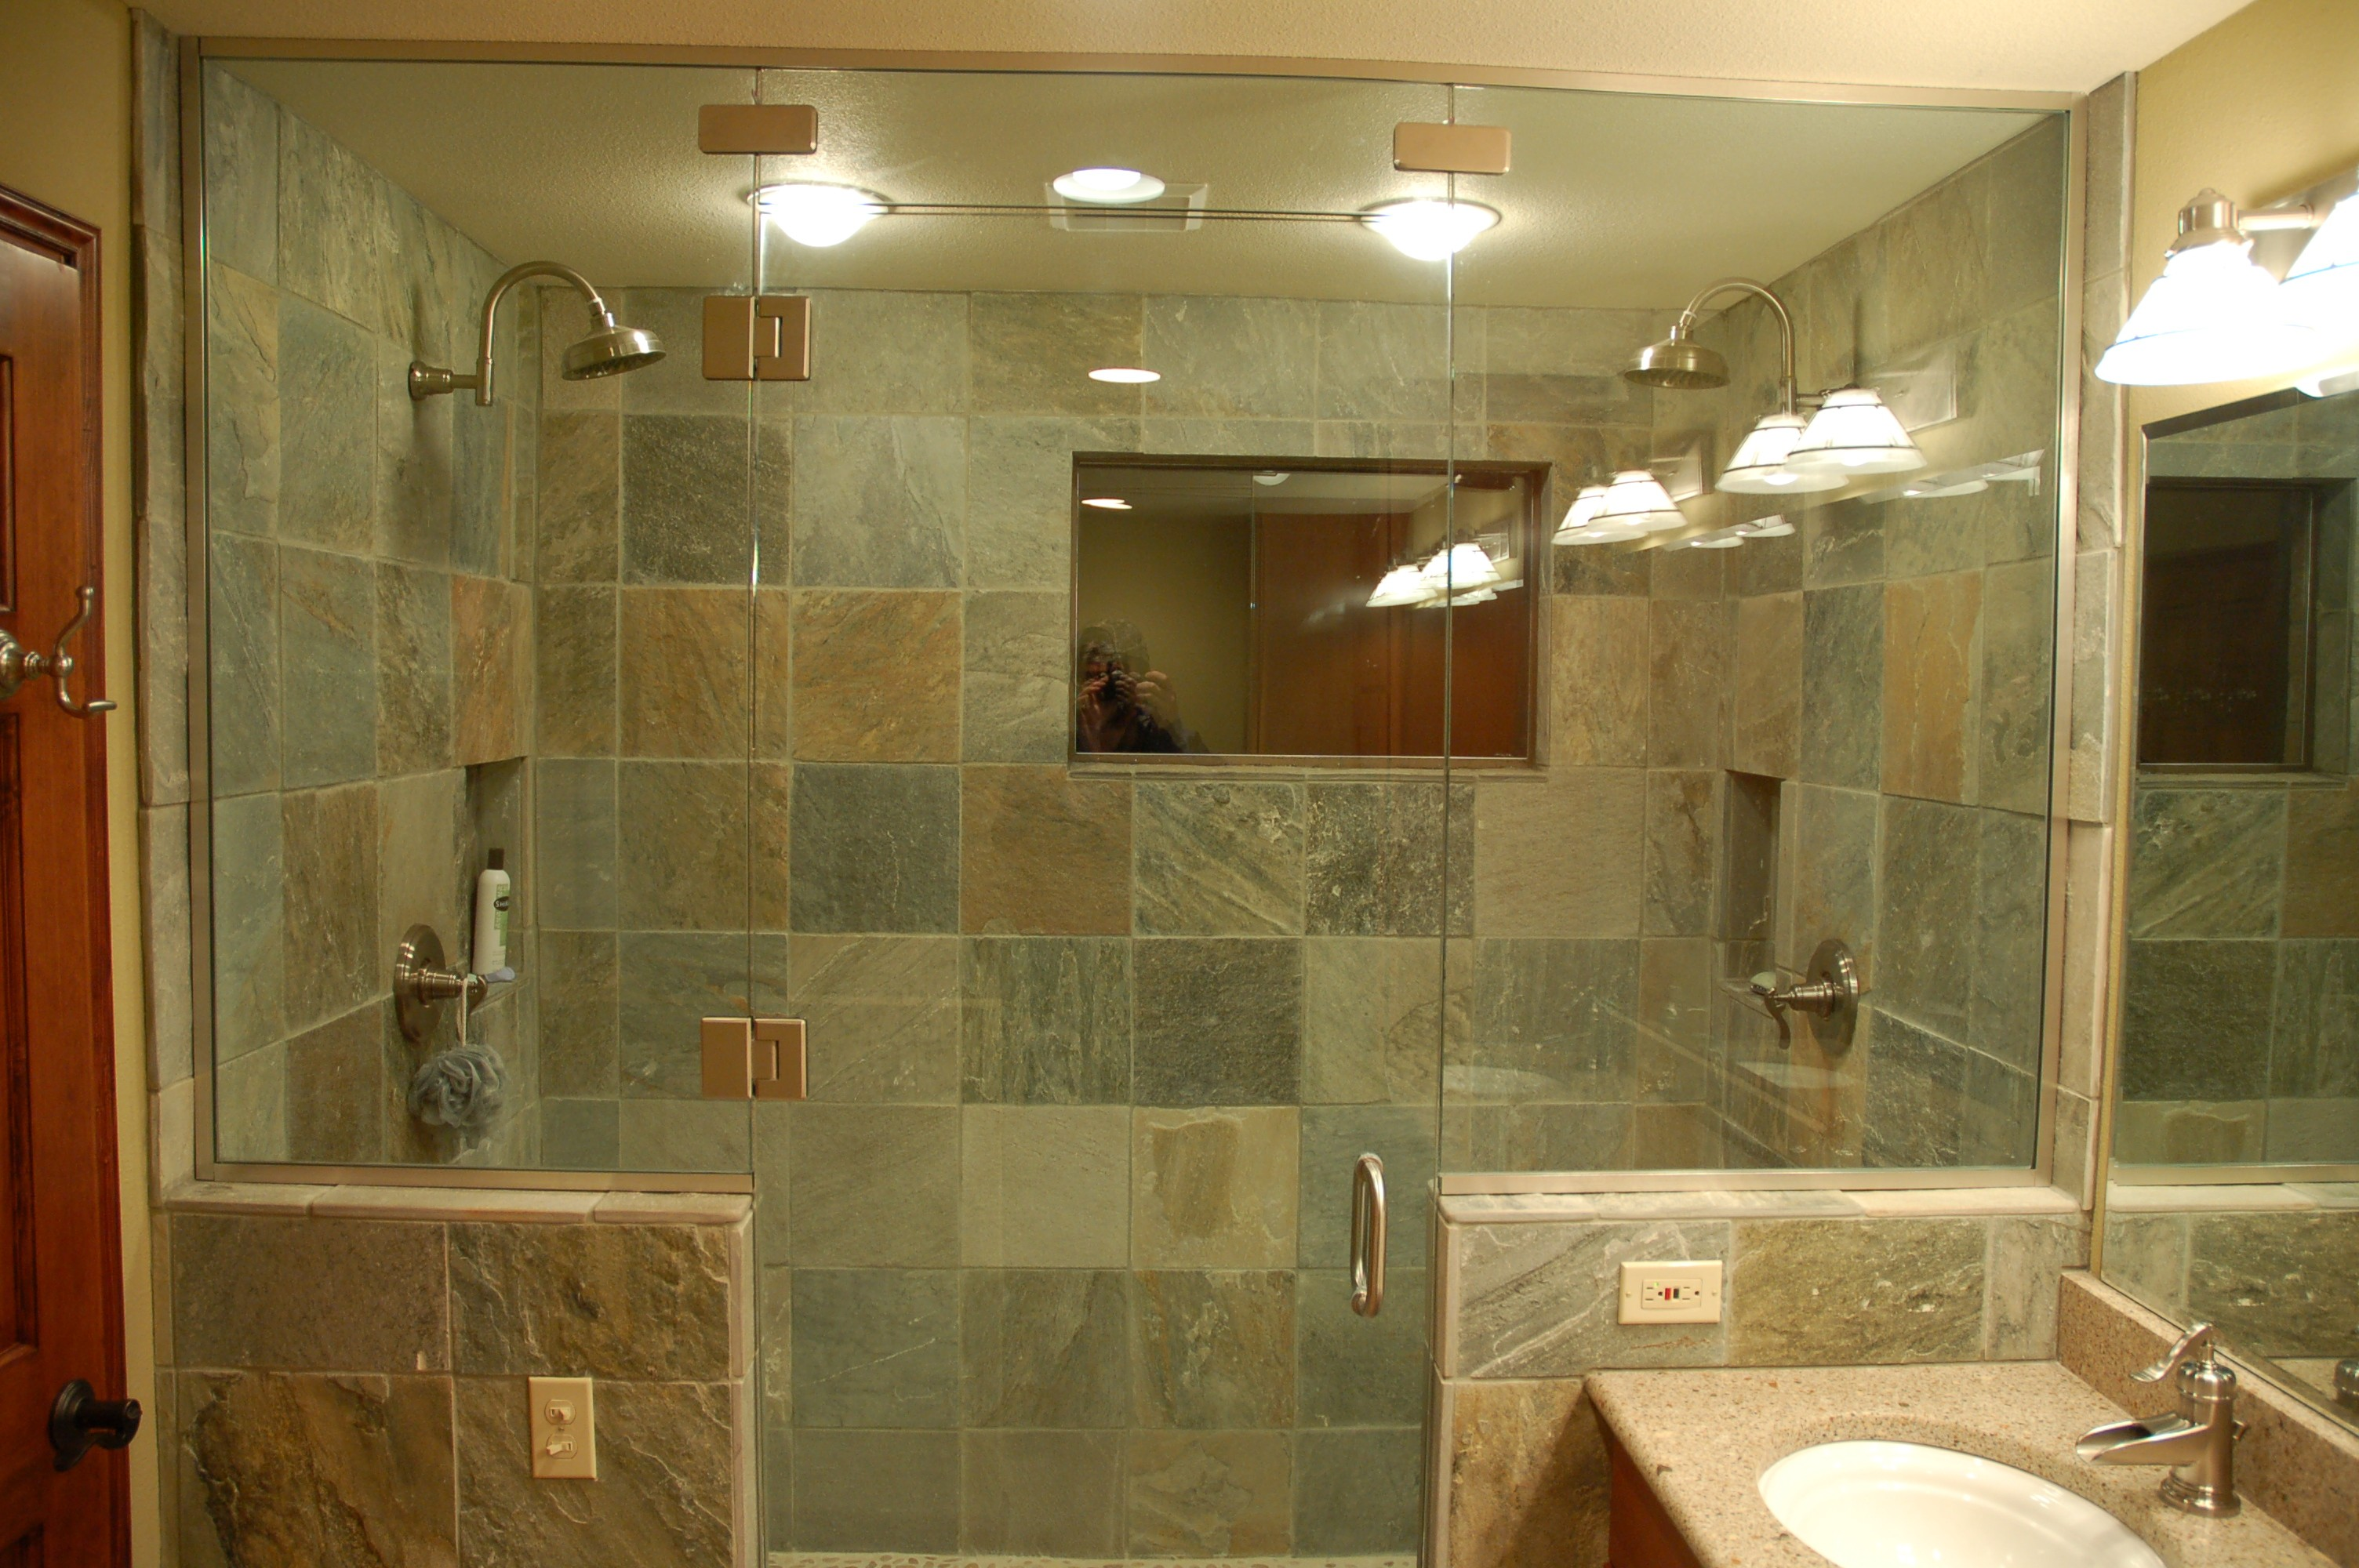 furniture-interior-bathroom-bathroom-decor-ideas-modern-adorable-bathroom-bathroom-ideas-decor-fantastic-slate-shower-wall-tiles-with-glass-door-and-cool-granite-vanity-cute-oval-white-ceramic-underm